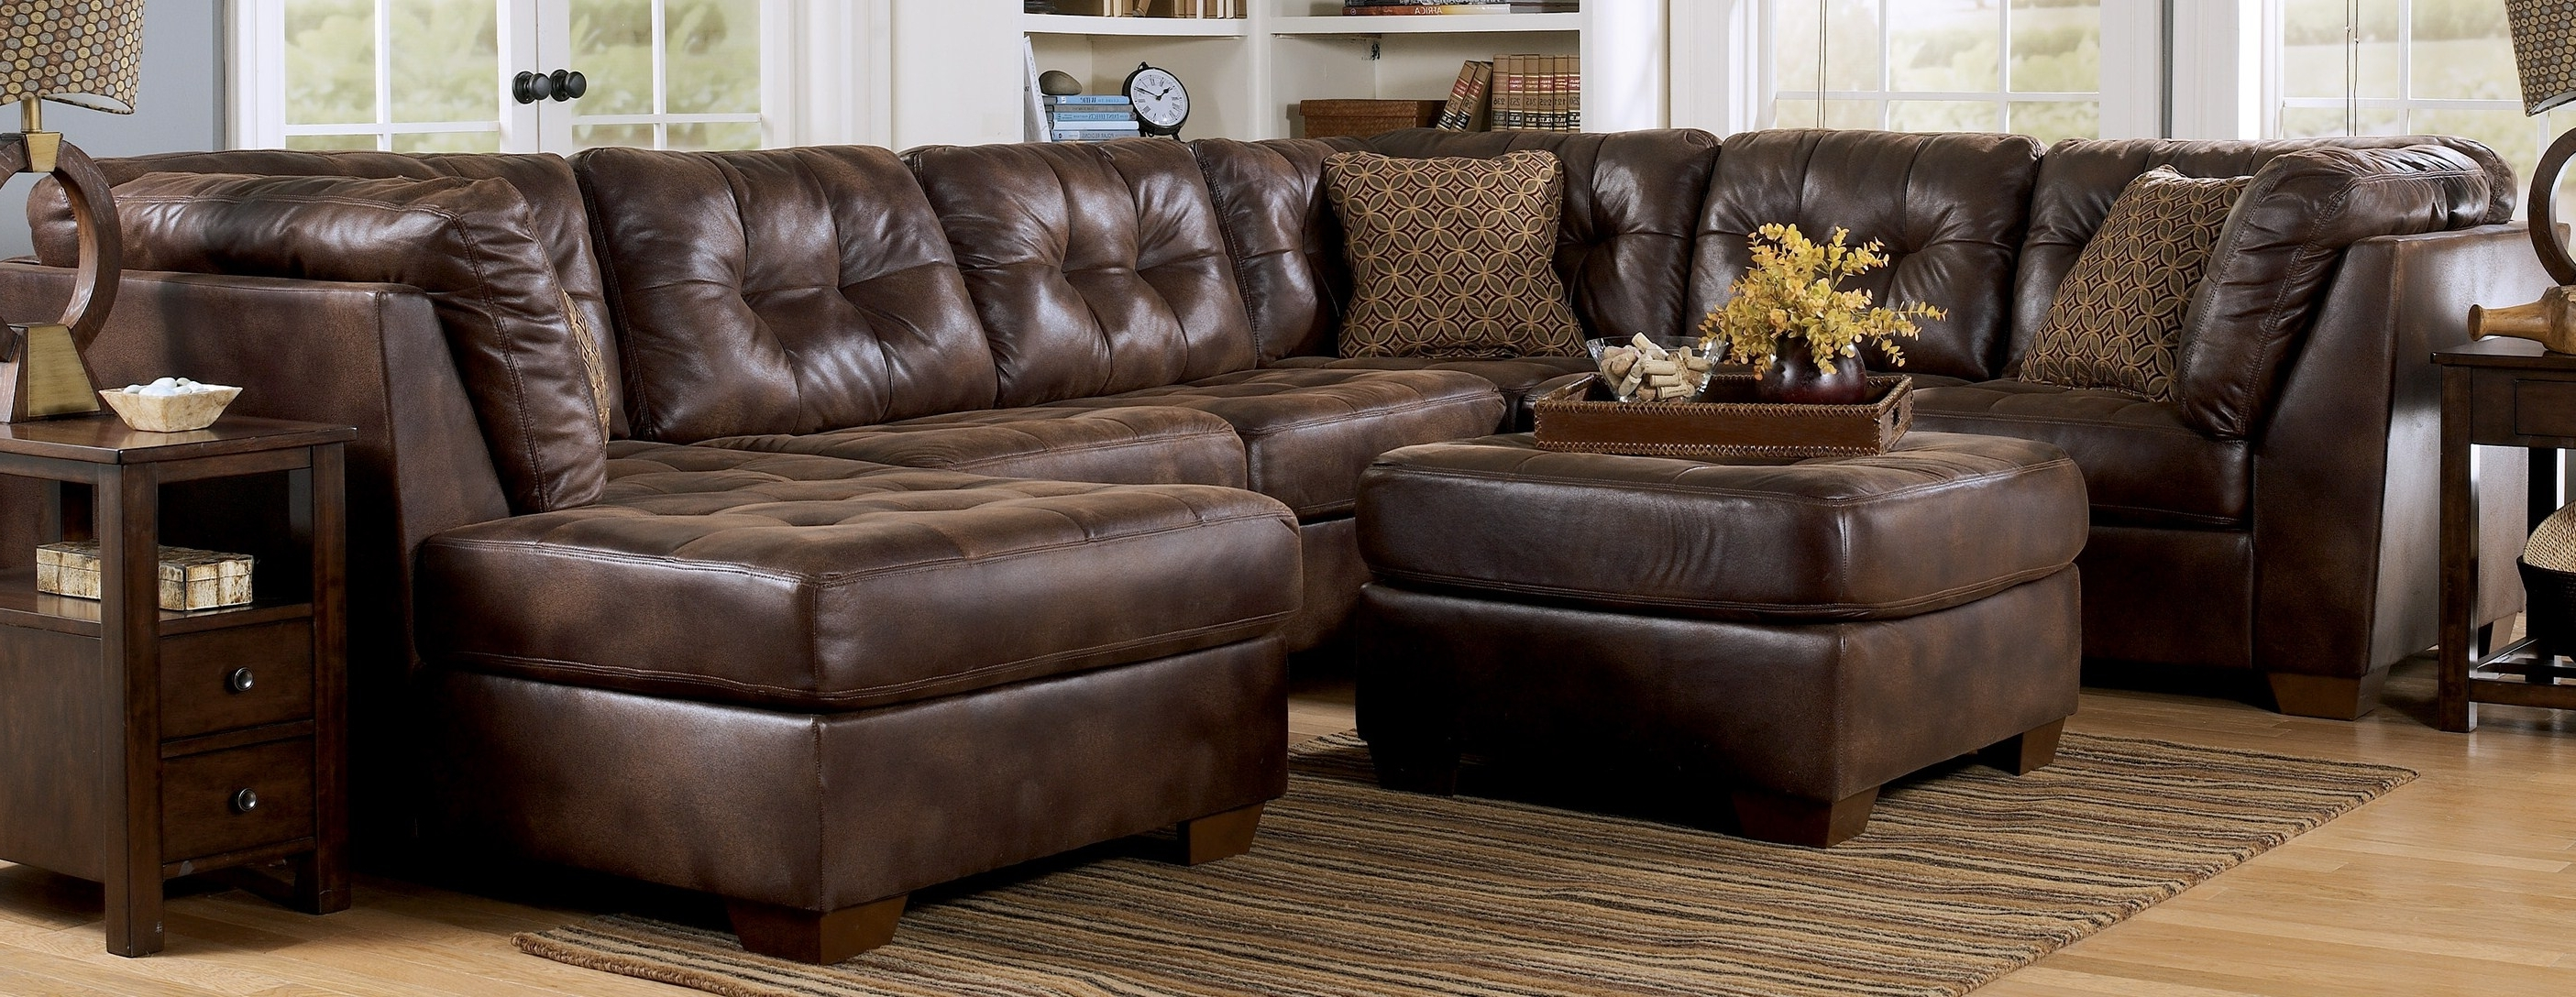 Famous Brown Leather Sectionals With Chaise With Regard To Luxury Leather Sectional Sleeper Sofa With Chaise 34 Contemporary (View 4 of 15)